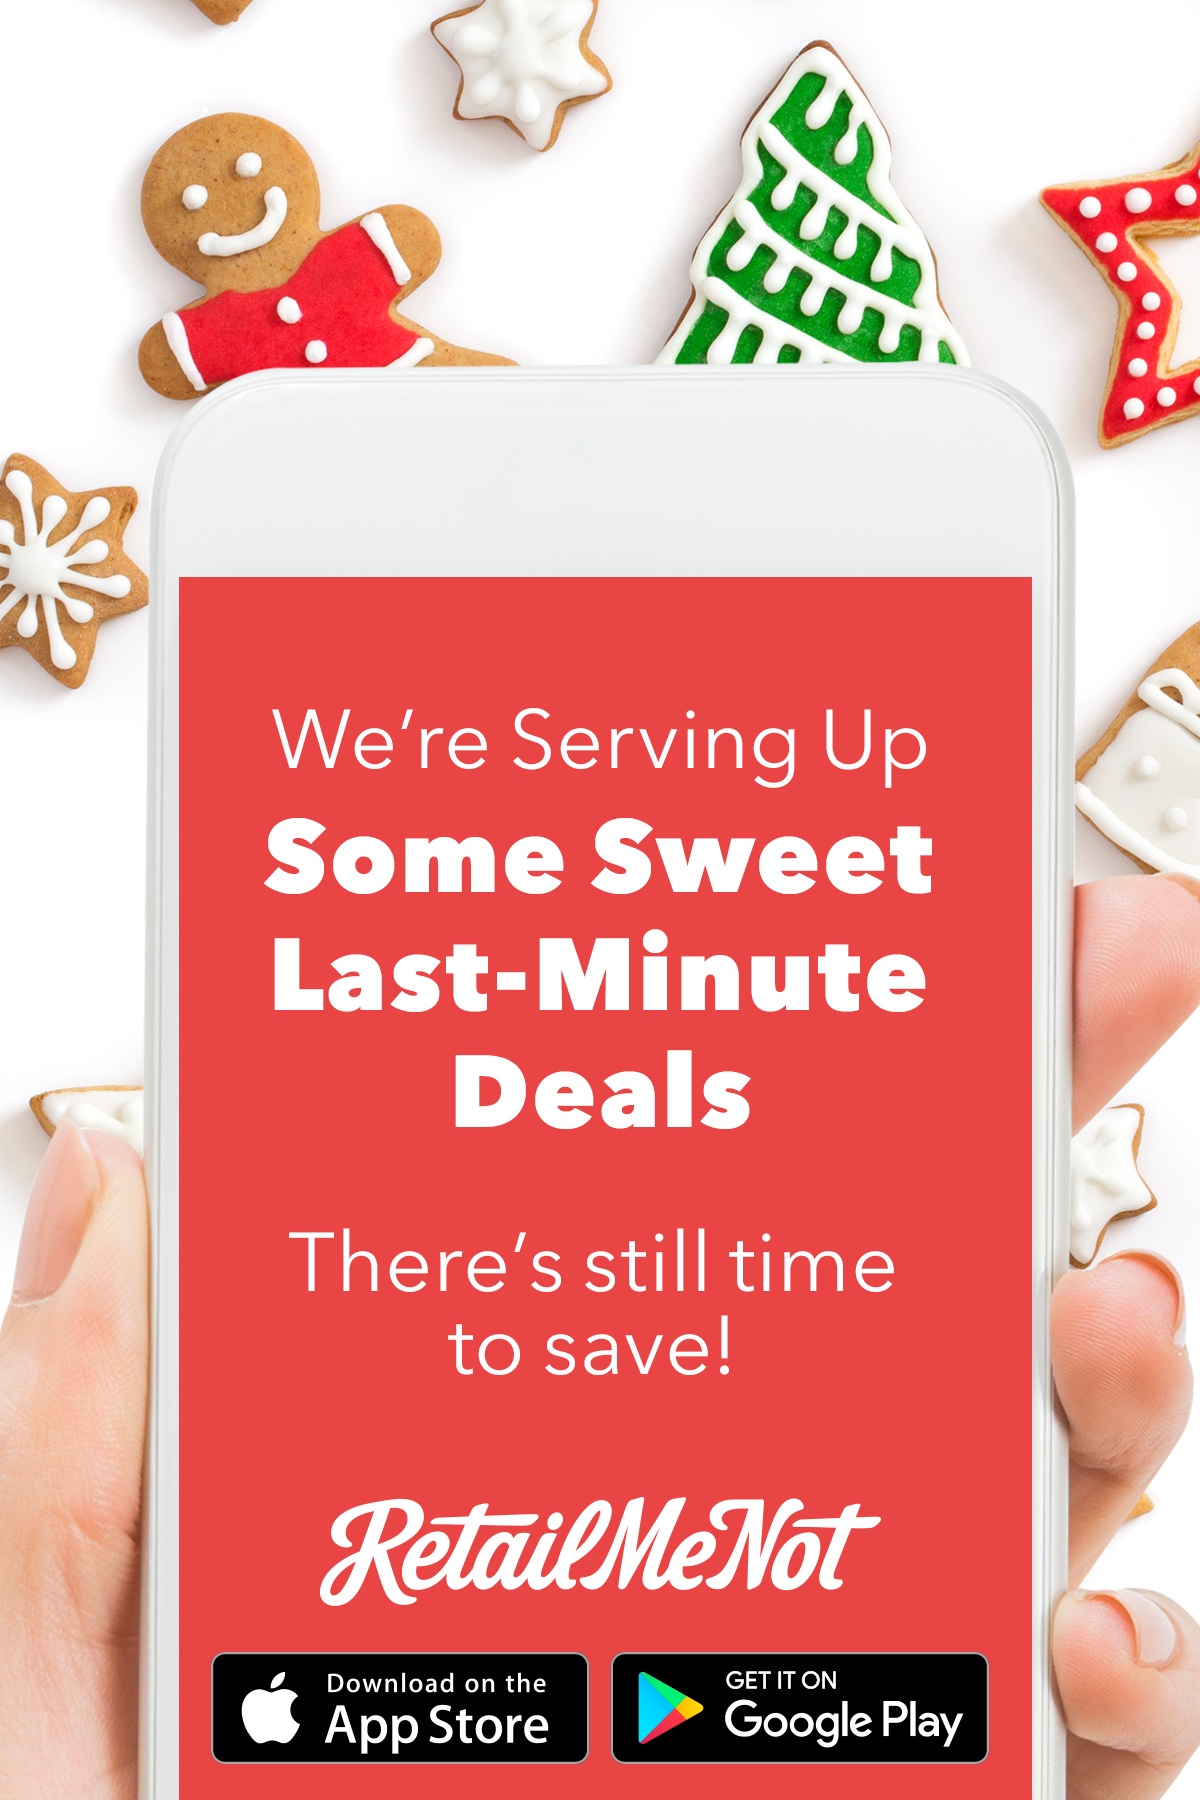 Holiday Savings At Your Fingertips!